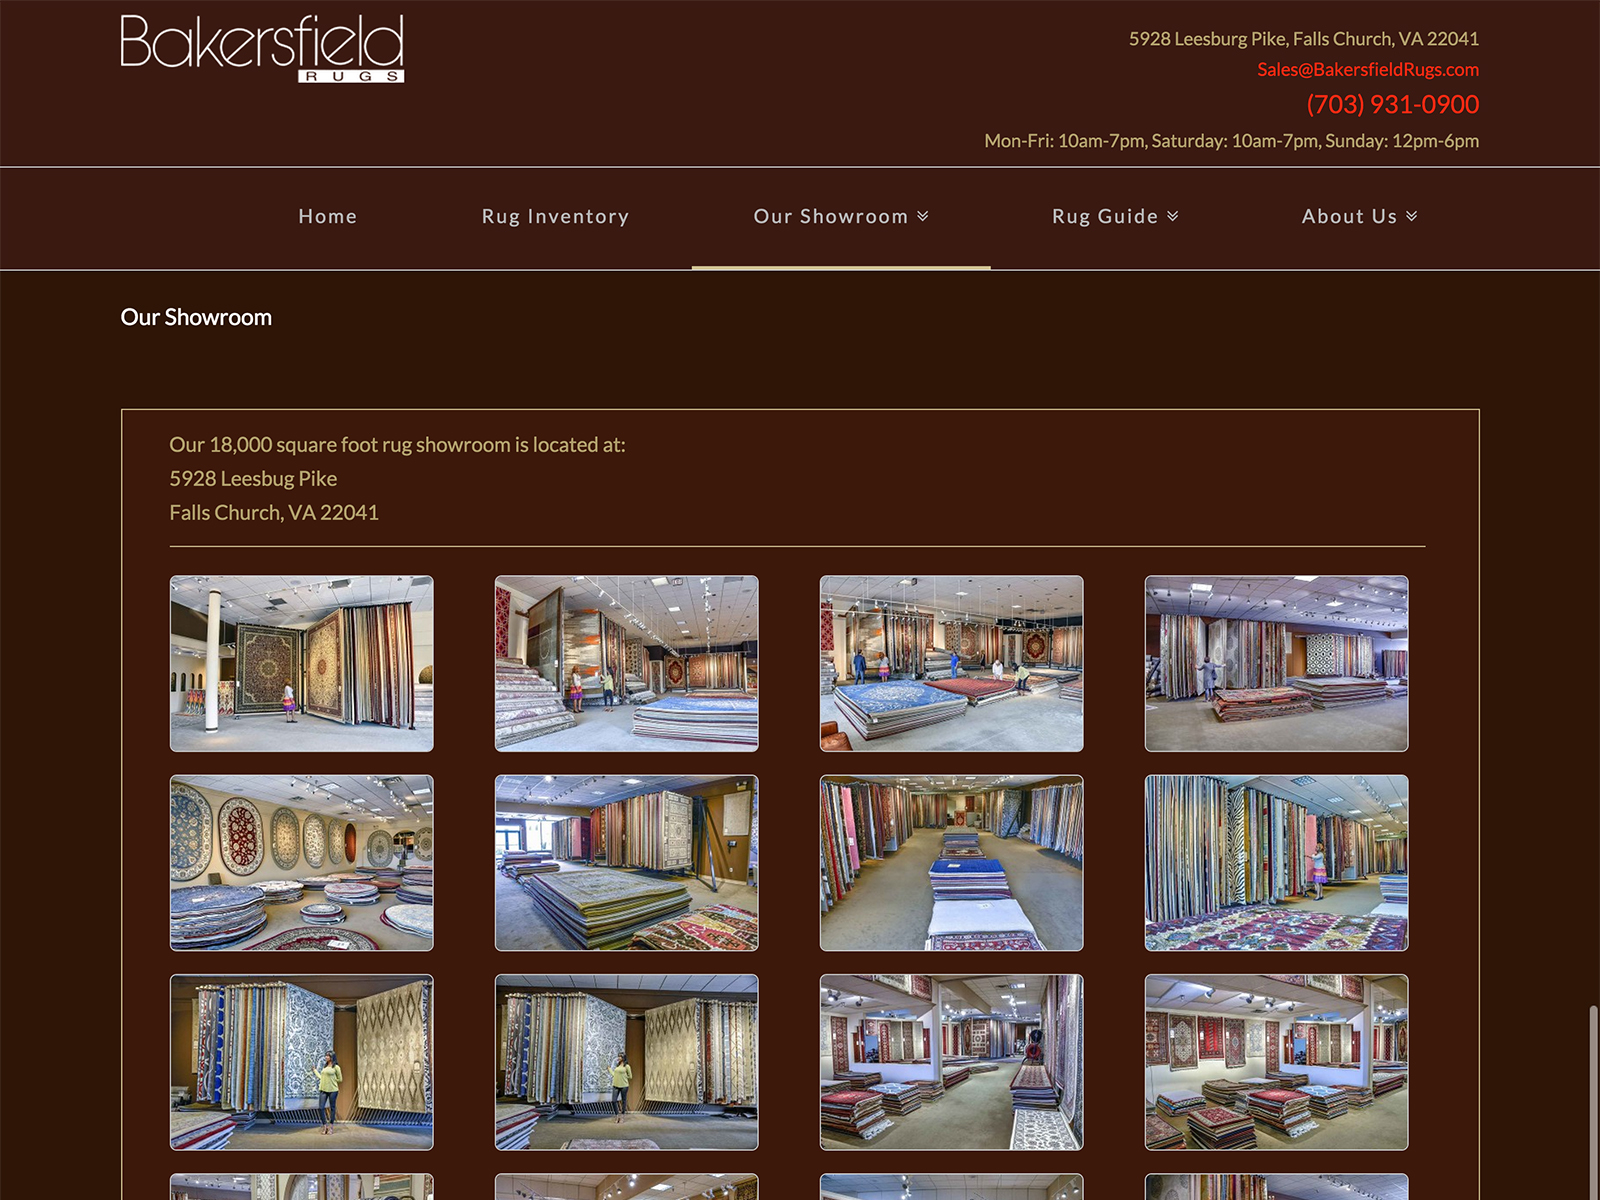 Website Redesign For Bakersfield Rugs 321 Ace